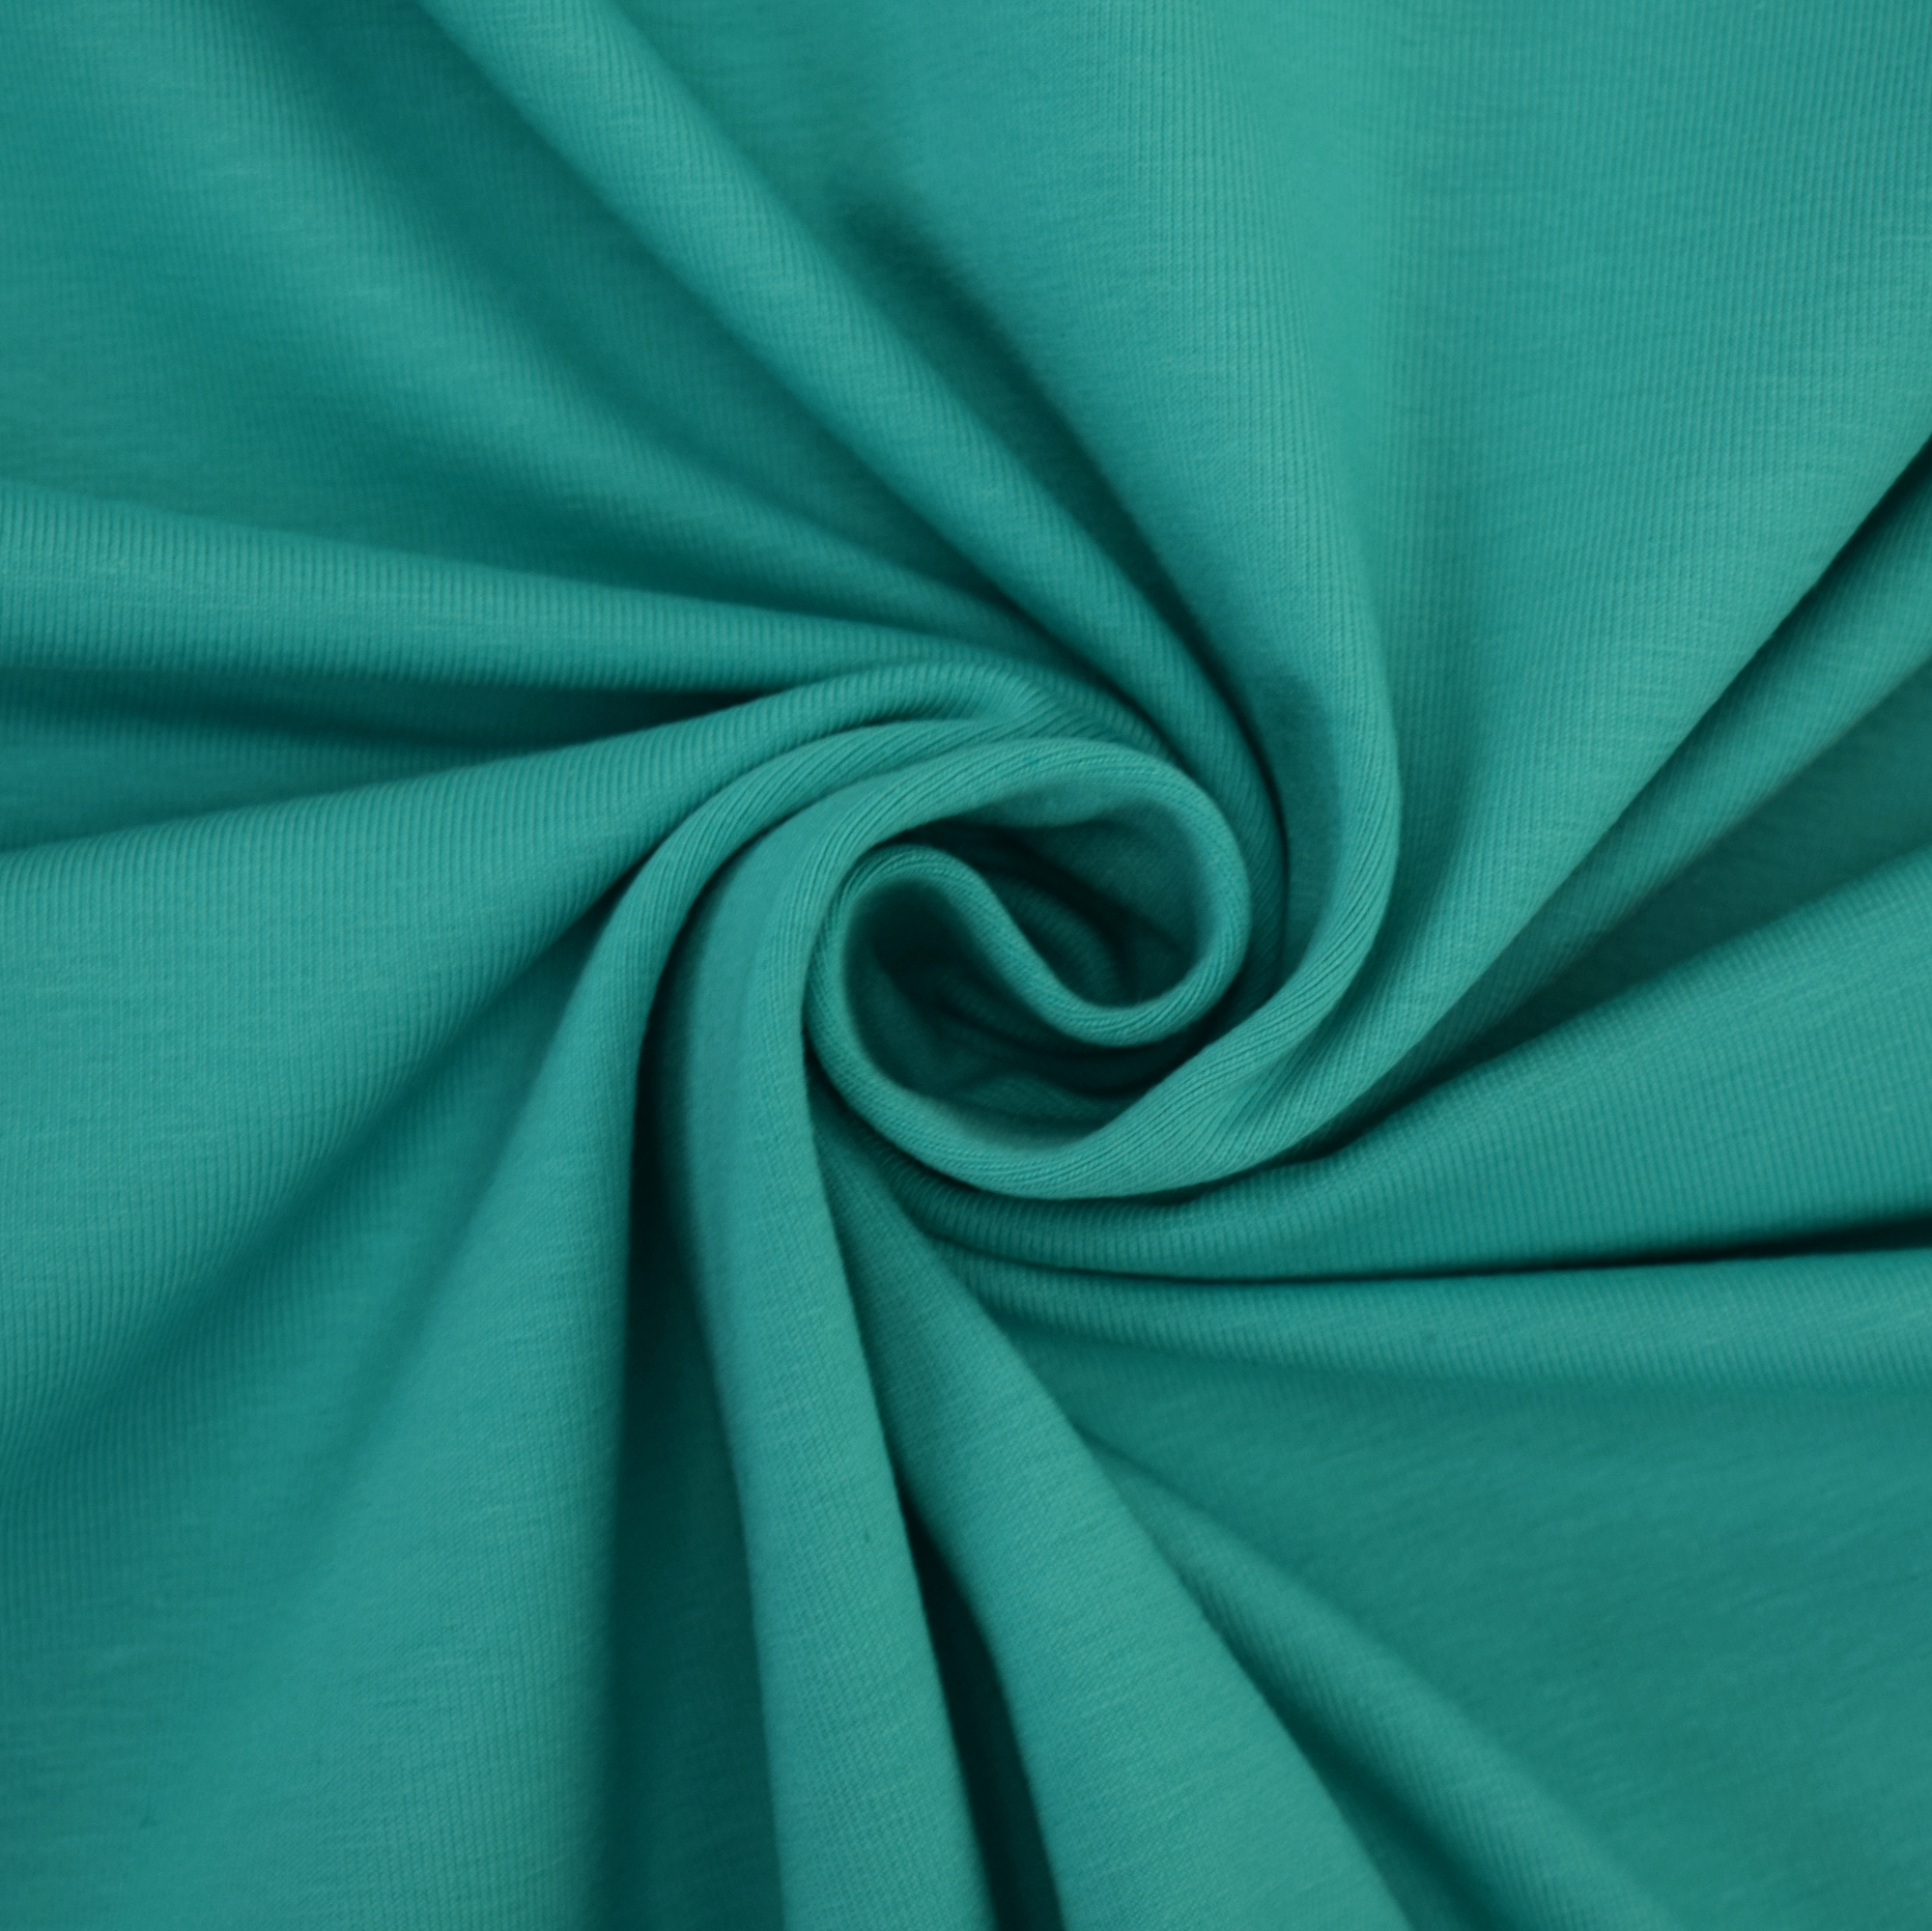 Cotton jersey plain, mint green | 455.421-6305 | grün